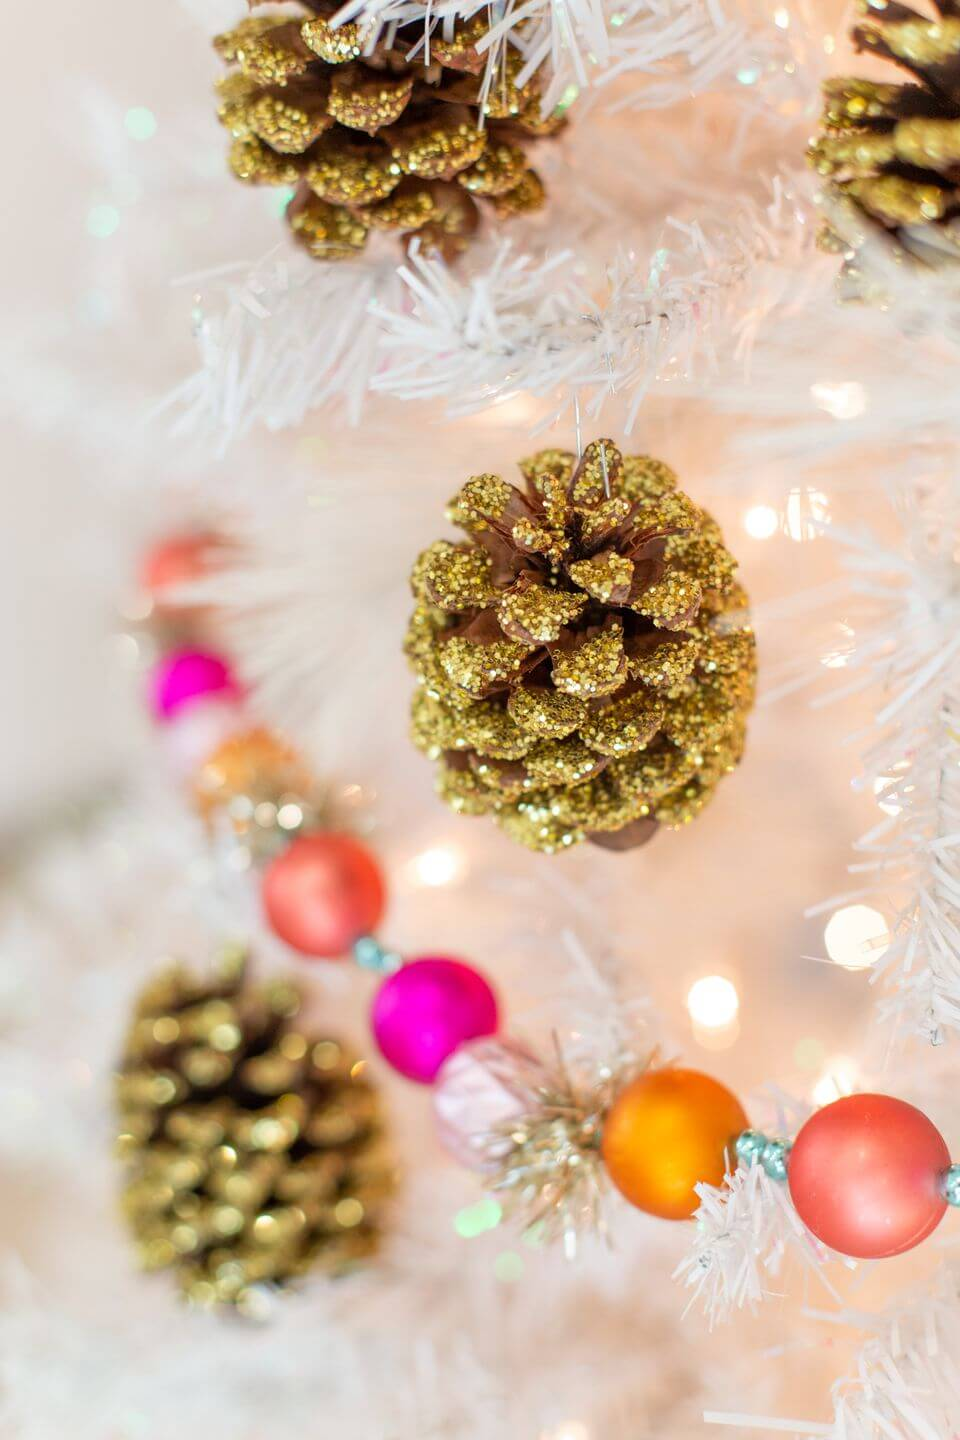 How to Make Glitter Pine Cone Ornaments, pine cone ideas, pine cone table decorations, bleached pine cone crafts, diy pinecone mice, pinecone crafts to sell, pine cone christmas tree ornaments, mini pine cone crafts, pine cone decoration ideas, diytomake.com, diy home decor, diy for home decor, ideas for diy home decor, diy home decor ideas, diy home decor crafts, diy home decor projects, diy home decor on pinterest, diy home decor pinterest, diy home decor dollar tree, diy home decor easy, diy home decor cheap, diy home decor ideas living room, diy home decor rustic, diy home decor craft ideas, diy home decor ideas budget, diy home decor christmas, diy home decor modern, diy home decor for christmas, diy home decor projects cheap, diy home decor blogs, diy home decor youtube, diy home decor hacks, diy home decor signs, diy gothic home decor, diy home decor on a budget, easy diy home decor projects, diy home decor ideas cheap, diy rustic home decor ideas, diy home decor paintings, diy elegant home decor, diy home office decor, diy home decor projects pinterest, diy home decor to sell, diy home decor gifts, nautical diy home decor, diy luxury home decor, diy home decor recycled, diy home decor tutorials, diy home decor tips, diy home decor ideas pinterest, best diy home decor youtube channels, diy home decor farmhouse, diy home decor book, diy home decor kits, diy home decor ideas bedroom, diy home decor with pallets, diy home decor mason jars, diy home decor christmas gifts, diy home decor 2017, diy home decor craft ideas wall, diy home decor living room, diy home decor art, diy upcycled home decor, diy home decor accessories, diy home decor canvas art, diy home decor from recycled materials, diy christmas home decor 2018, diy home decor step by step, unique diy home decor ideas, diy home decor ideas easy and cheap, diy home decor magazine, 33 cool diy home decor ideas, diy home decor kitchen, quirky diy home decor, diy home xmas decor, diy home decor with wood, diy home decor 2019, diy home office decor ideas, diy home decor for apartments, diy japanese home decor, diy home decor ideas kitchen, how to diy home decor, diy home decor ideas india, diy home decor youtube channels, diy home decor pictures, diy home decor wall art, diy home decor with household items, diy home decor plants, diy home decor with cardboard boxes, diy home decor 2018, diy yourself home decor, diy dollar tree home decor youtube, diy home decor ideas for diwali, diy home decor online, diy home decor india, diy home decor organization, diy queen home decor, how to make diy home decor, diy home decor with glass bottles, diy home decor instagram, diy home decor indian style, diy home decor with hot glue gun, diy home decor bedroom, diy room decor 15 easy crafts ideas at home, diy home decor from waste, diy home decor paper crafts, diy home decor tumblr, diy simple home decor hanging flowers, diy home decor 5 minute crafts, diy home decor malaysia, diy home decor halloween, diy home decor for diwali, diy home decor for small spaces, diy home decor with paper, diy home decor to make and sell, diy home gym decor, diy home decor easy cheap, images of diy home decor, diy home decor life hacks, diy home decor wall hanging, diy home decor ideas easy, diy home decor lamp, diy home decor ideas new, diy projects for home decor youtube, diy home decor how to paint a faux concrete wall finish, how to do diy home decor, diy home decor mirrors, diy home decor diwali, diy home decor classes, diy home decor with nails, how to make diy home decorating ideas, diy home decor shabby chic, 100 dollar store diy home decor ideas, diy home decor with fabric, diy home decor tv shows, diy room decor 12 easy crafts ideas at home, diy home decor stores, diy nerd home decor, diy home decor using paper, diy home decor ideas diwali, diy home decor apps, diy home decor subscription box, simple diy for home decor, diy home decor hgtv, diy home decor business ideas, diy home decor with newspaper, diy home decor sewing projects, diy home decor video, diy home decor glam, diy home decor curtains, diy home decor cardboard, diy home decor pdf, diy home decor trends, diy home decor business names, cheap diy home decor dollar tree, diy home decor dollar tree 2019, useful diy home decor, diy homemade decor, diy home decor ideas 2018, the best diy home decor, diy home decor and organization, diy home decor australia, diy home decor interior design, diy for home decor easy, diy home decor logo, 3d diy home decor, diy home decor using cardboard, diy home decor meaning, diy home decor on youtube, diy luxe home decor, diy home decor supplies,